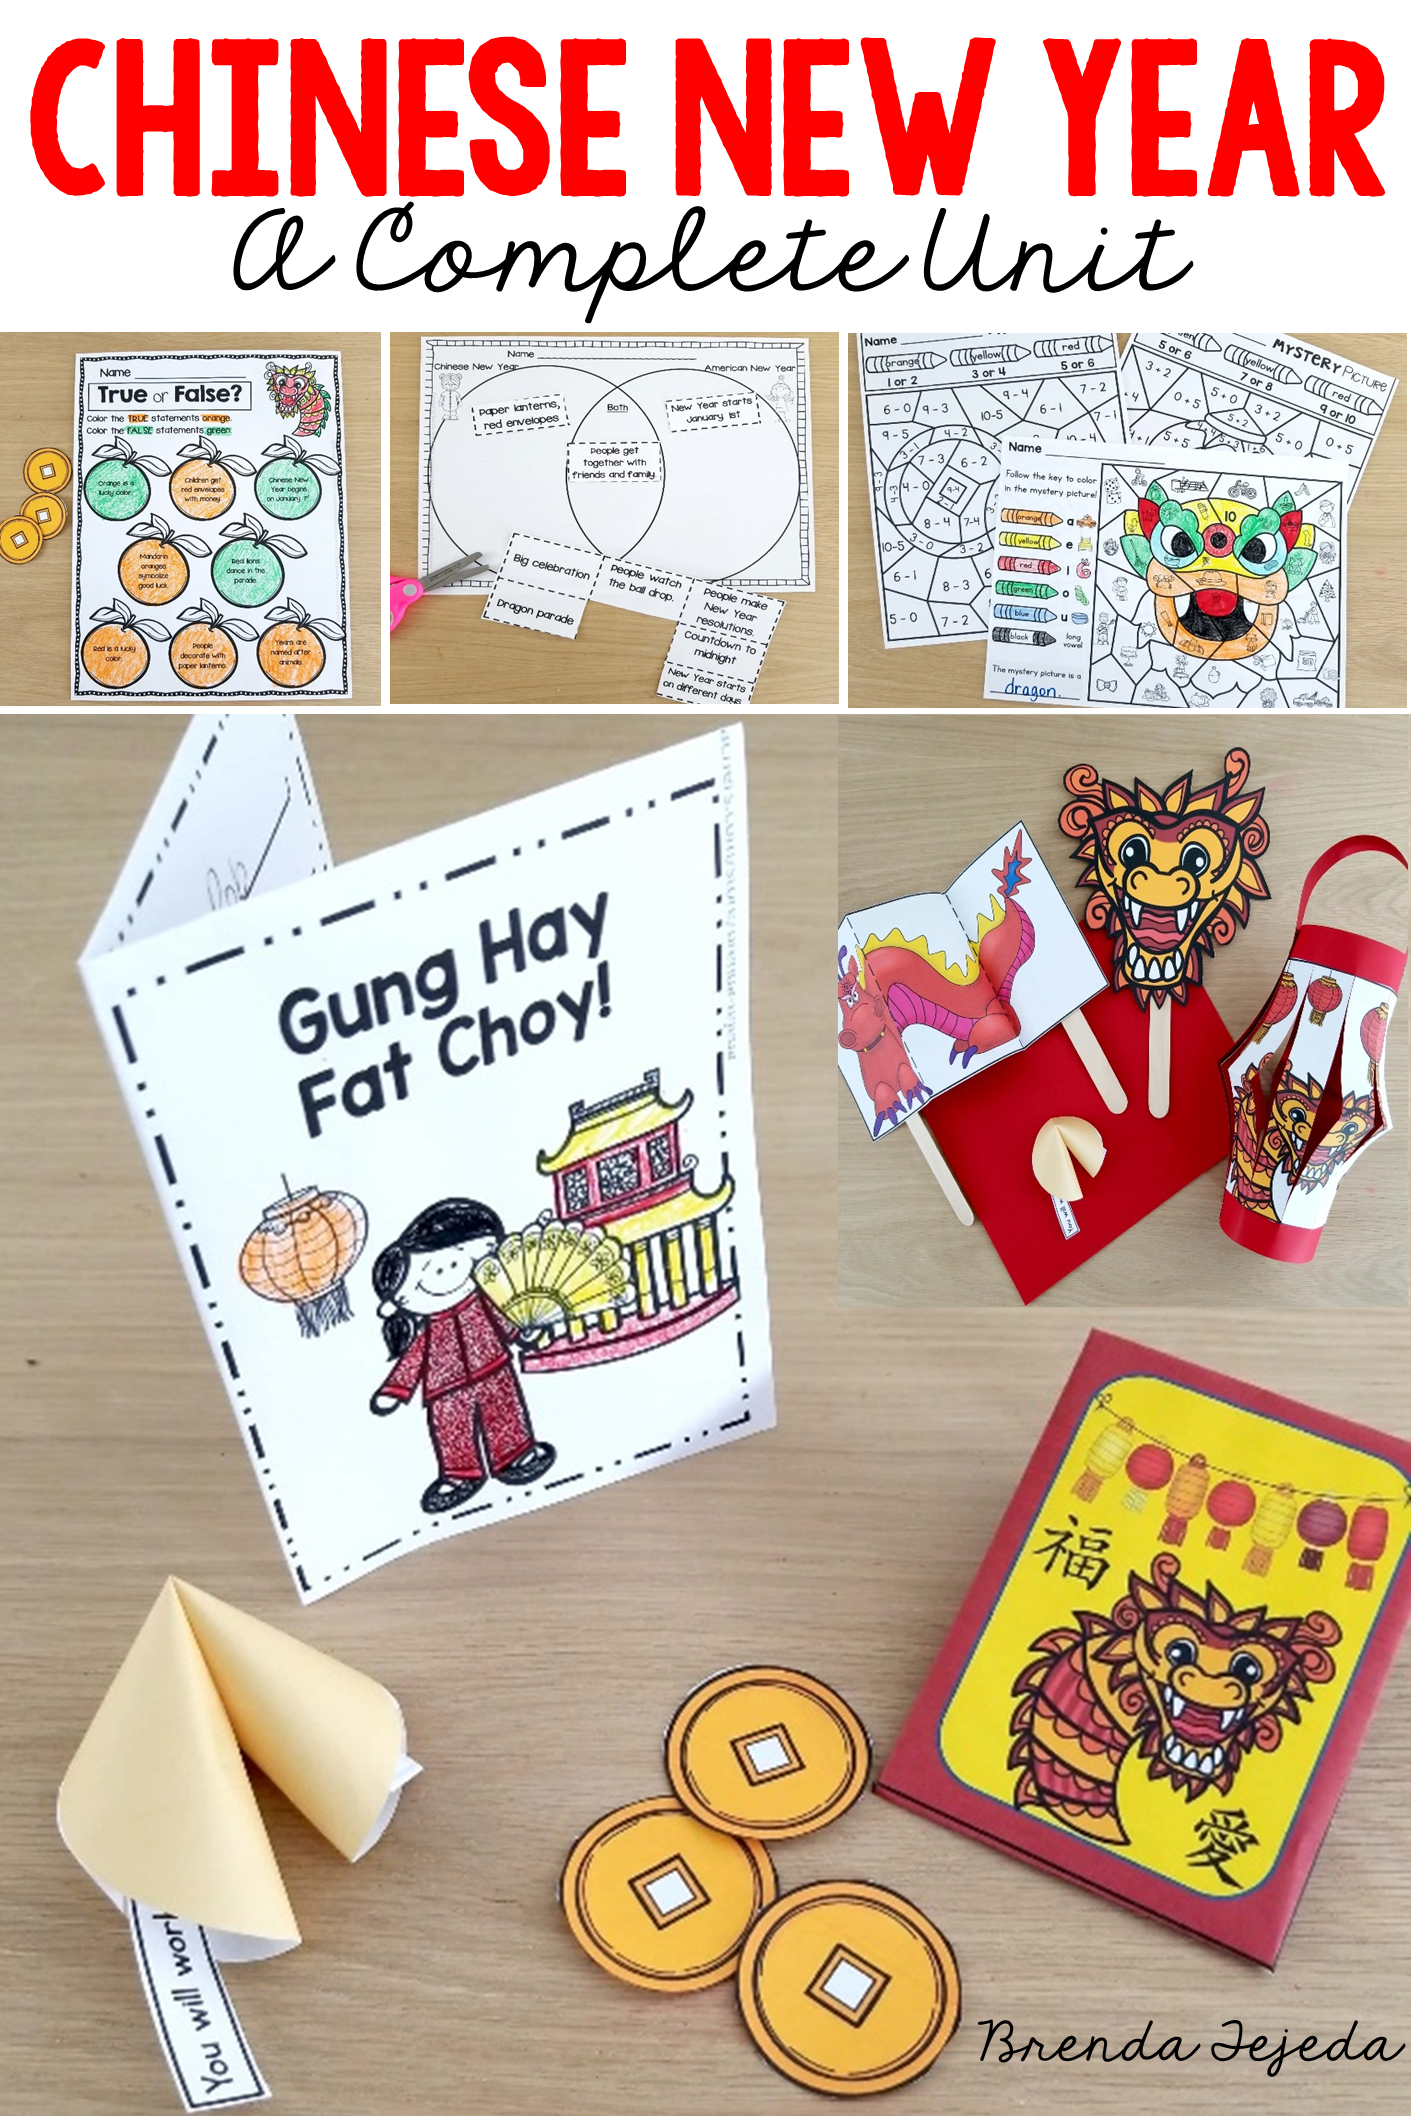 Chinese New Year Fact Cards Printables Crafts